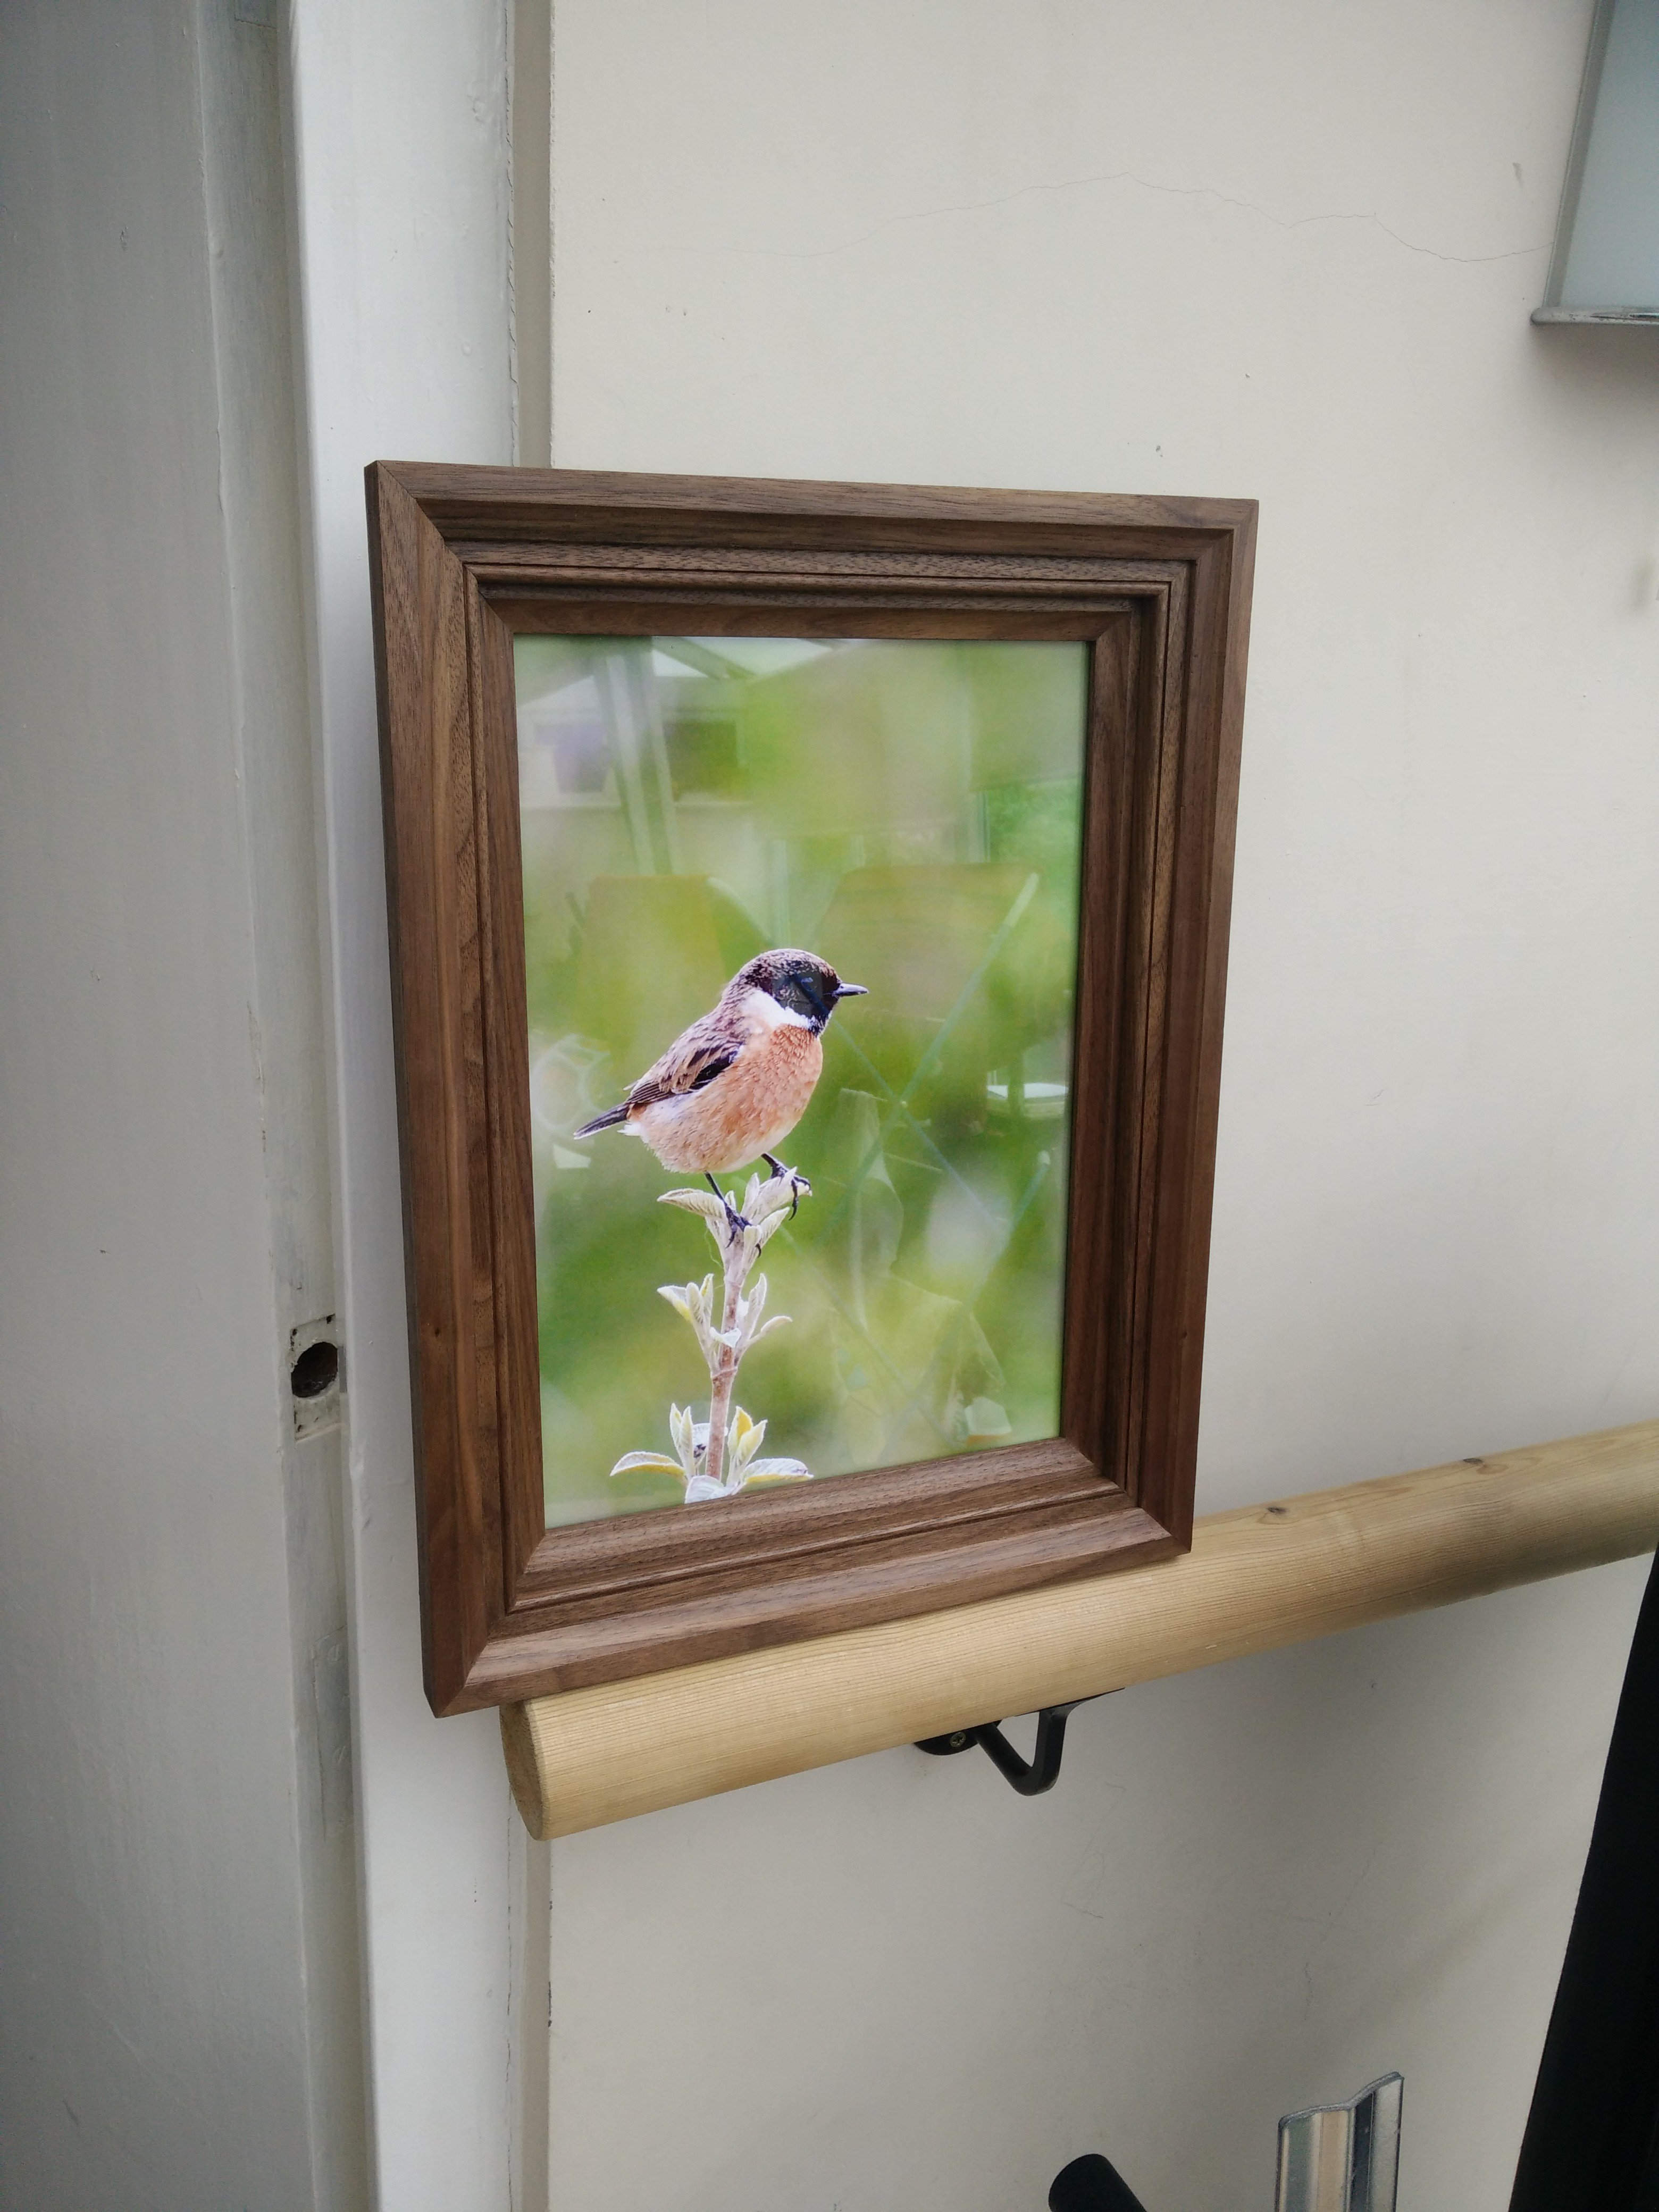 Picture Frames Gallery - Woodworking Masterclasses